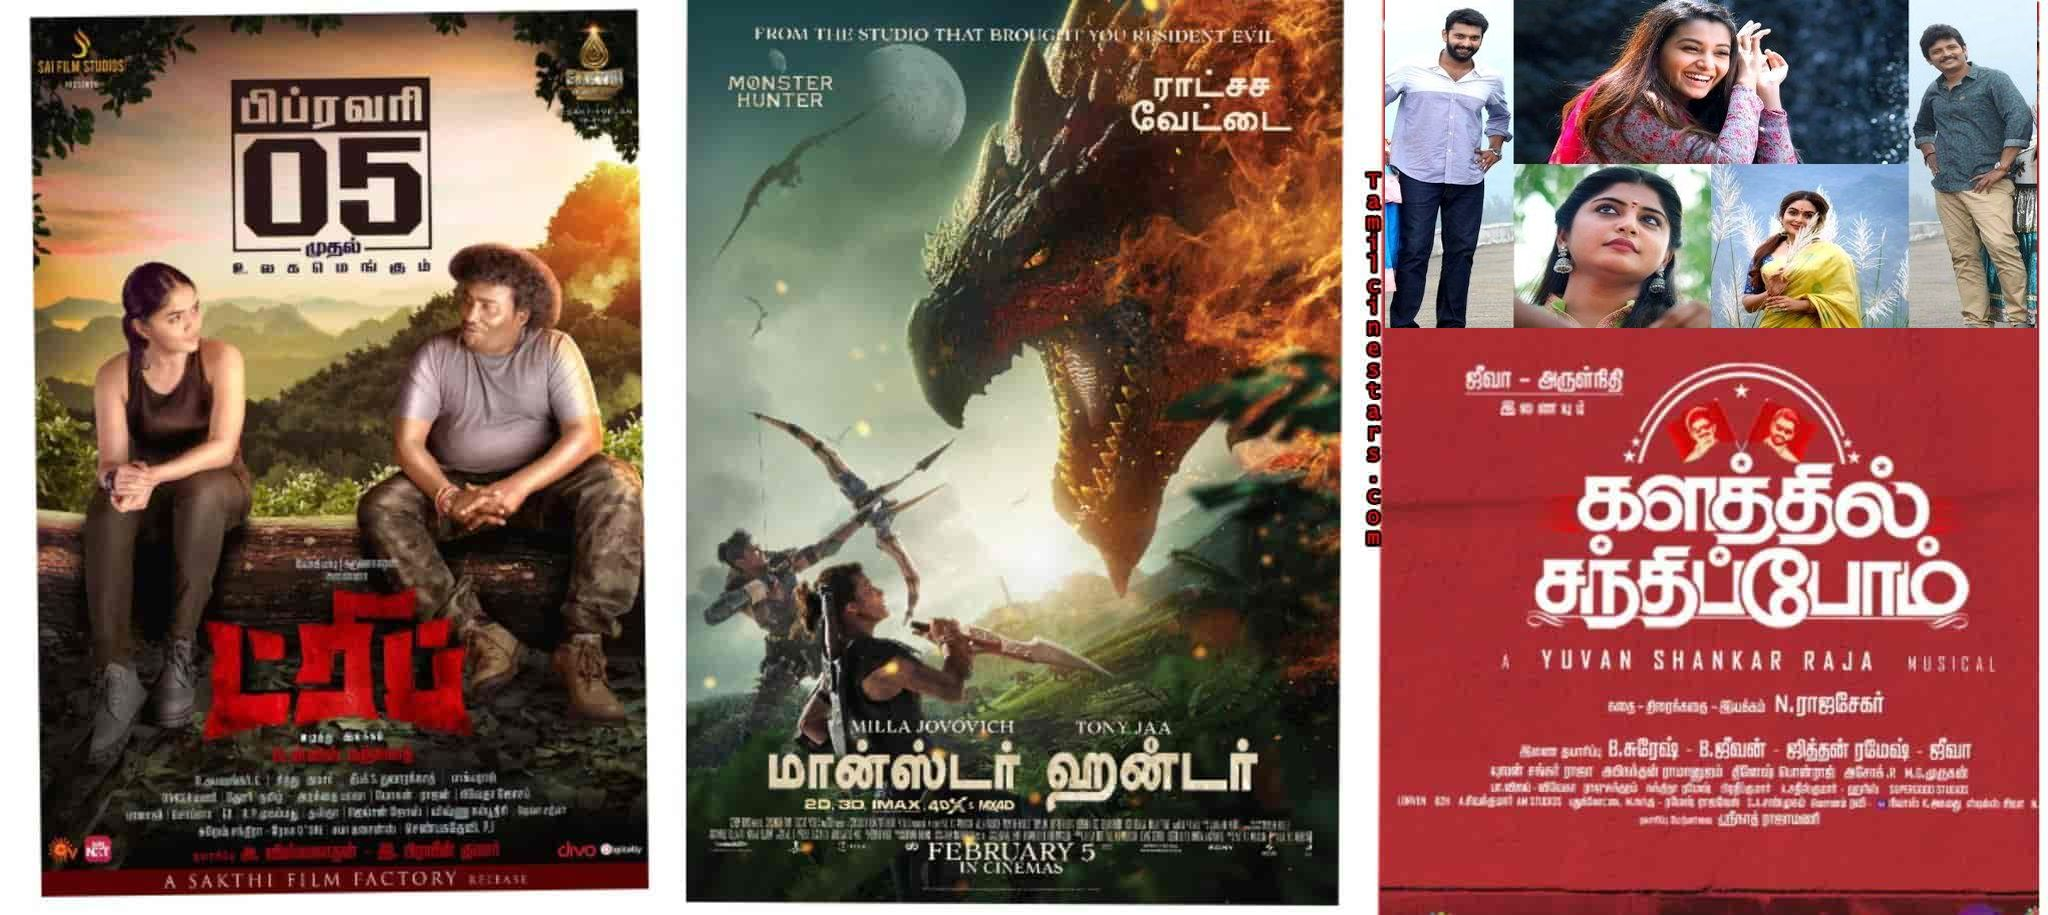 Movies Releasing Today February 5 Trip Monster hunter